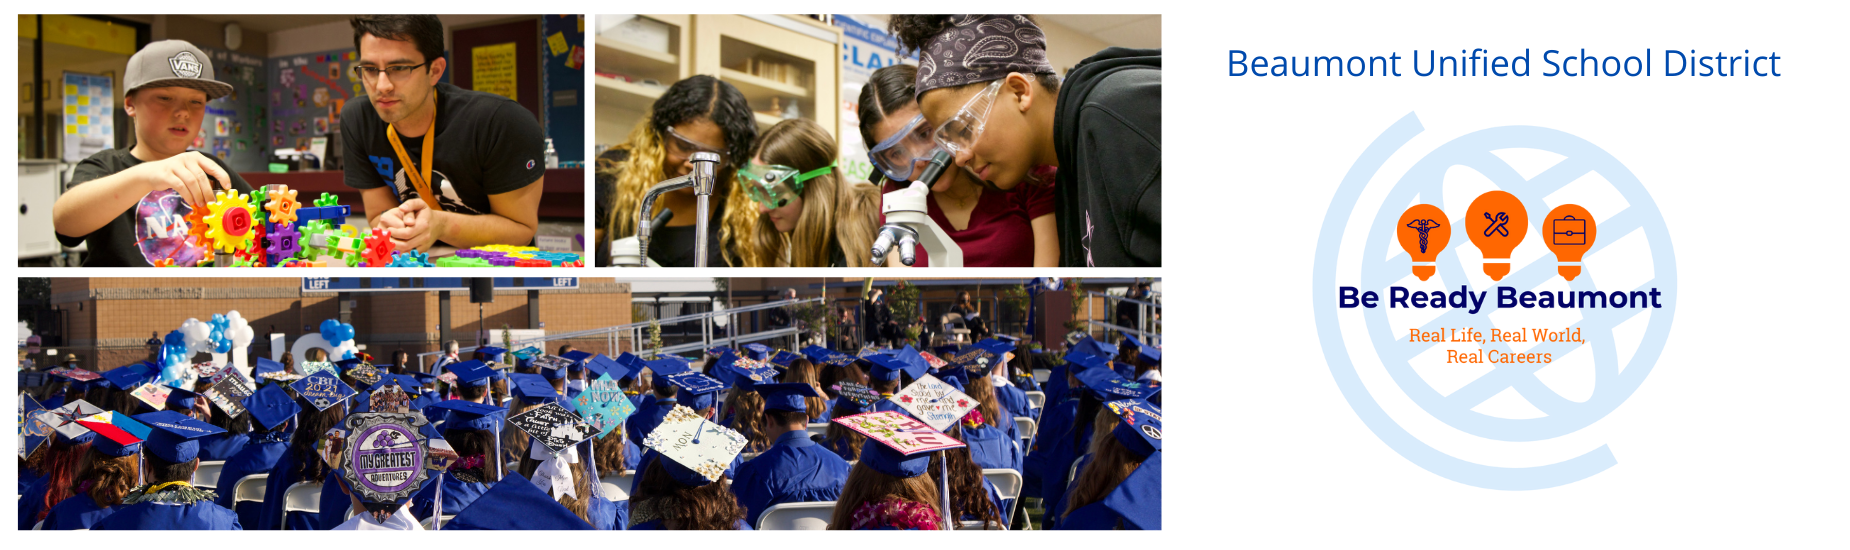 Student with teacher building gears. Students in Science class. Students with cap and gowns at graduation